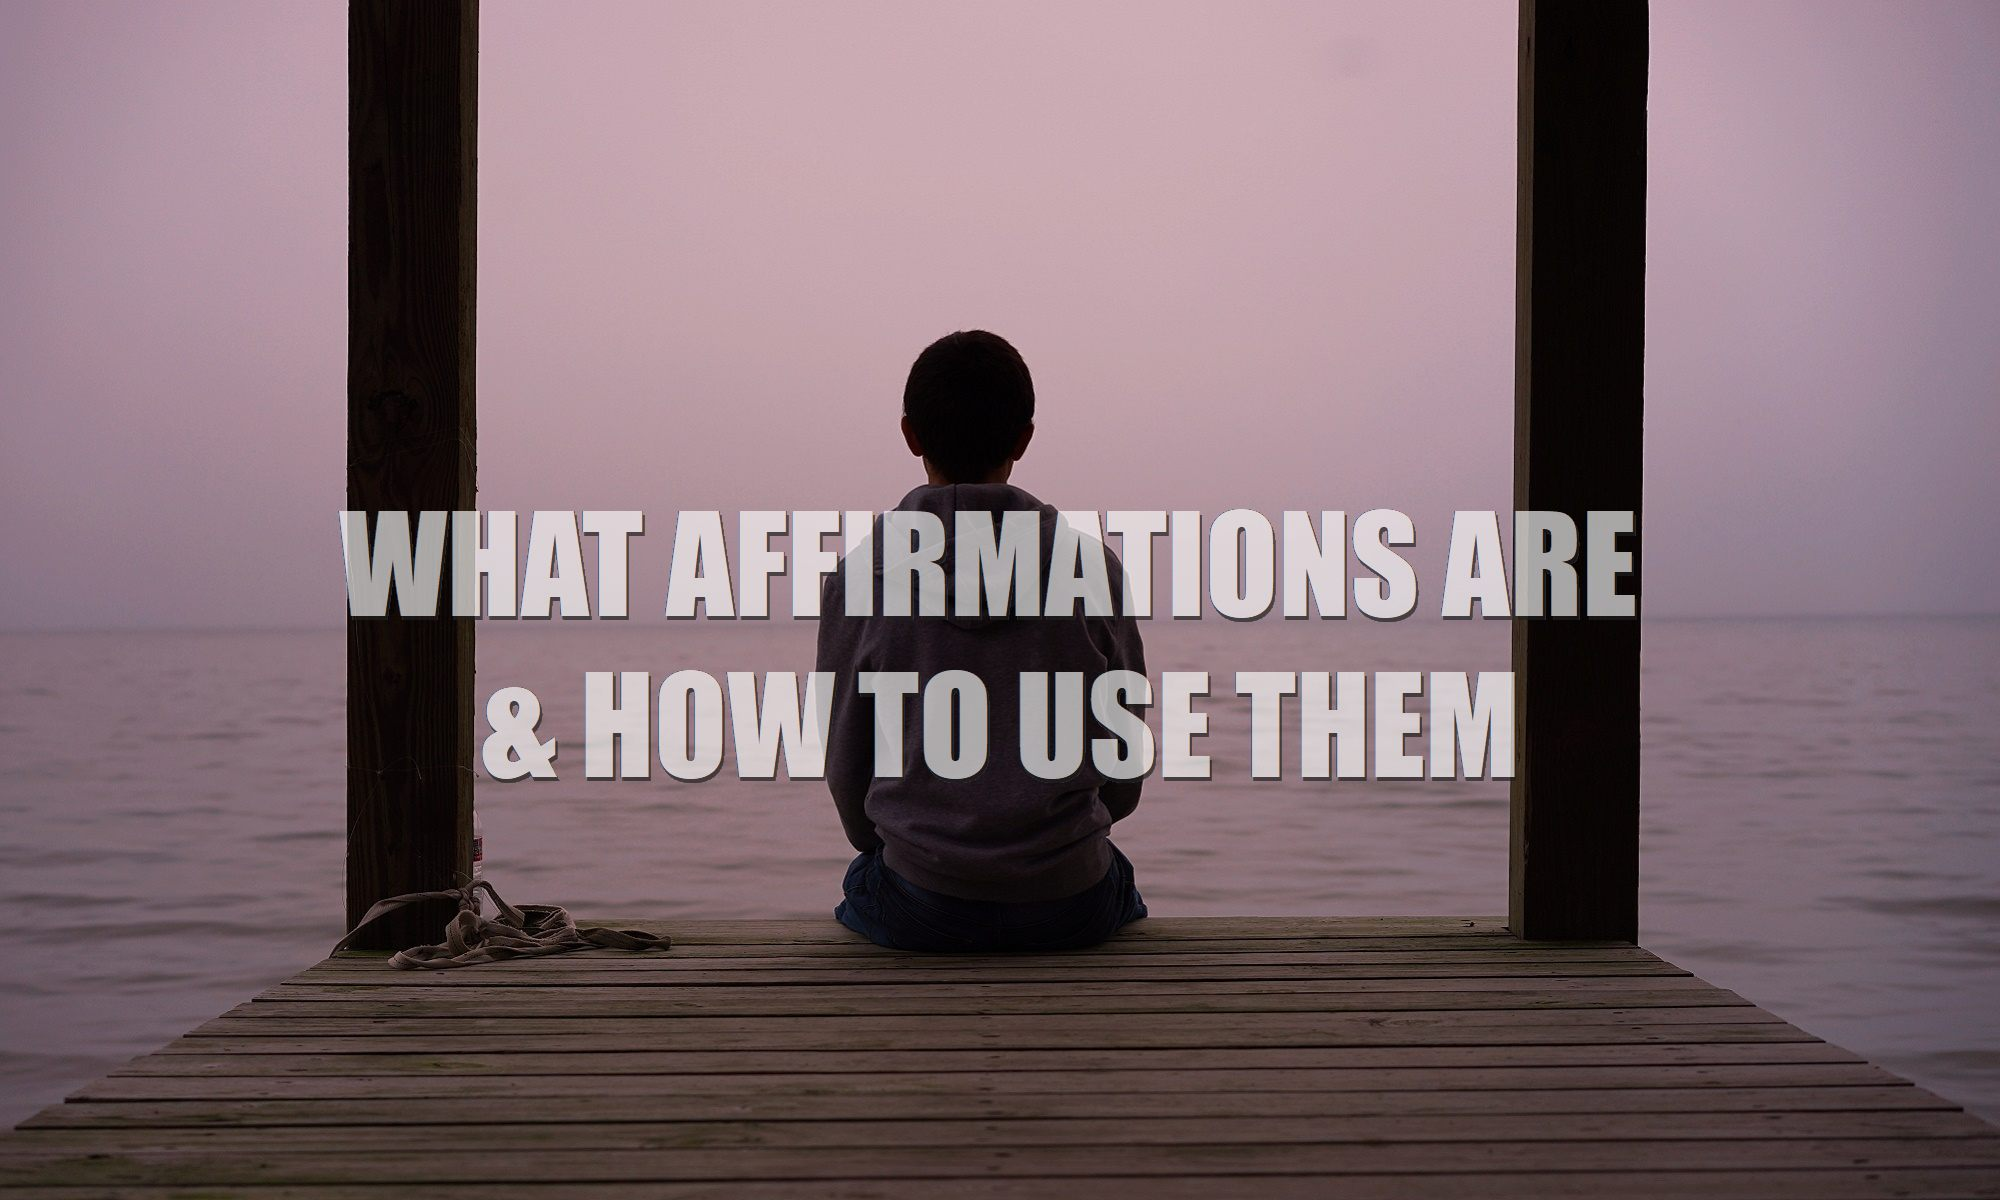 what-are-affirmations-how-to-use-them-the-creative-power-of-your-imagination-consciousness-mind-2000